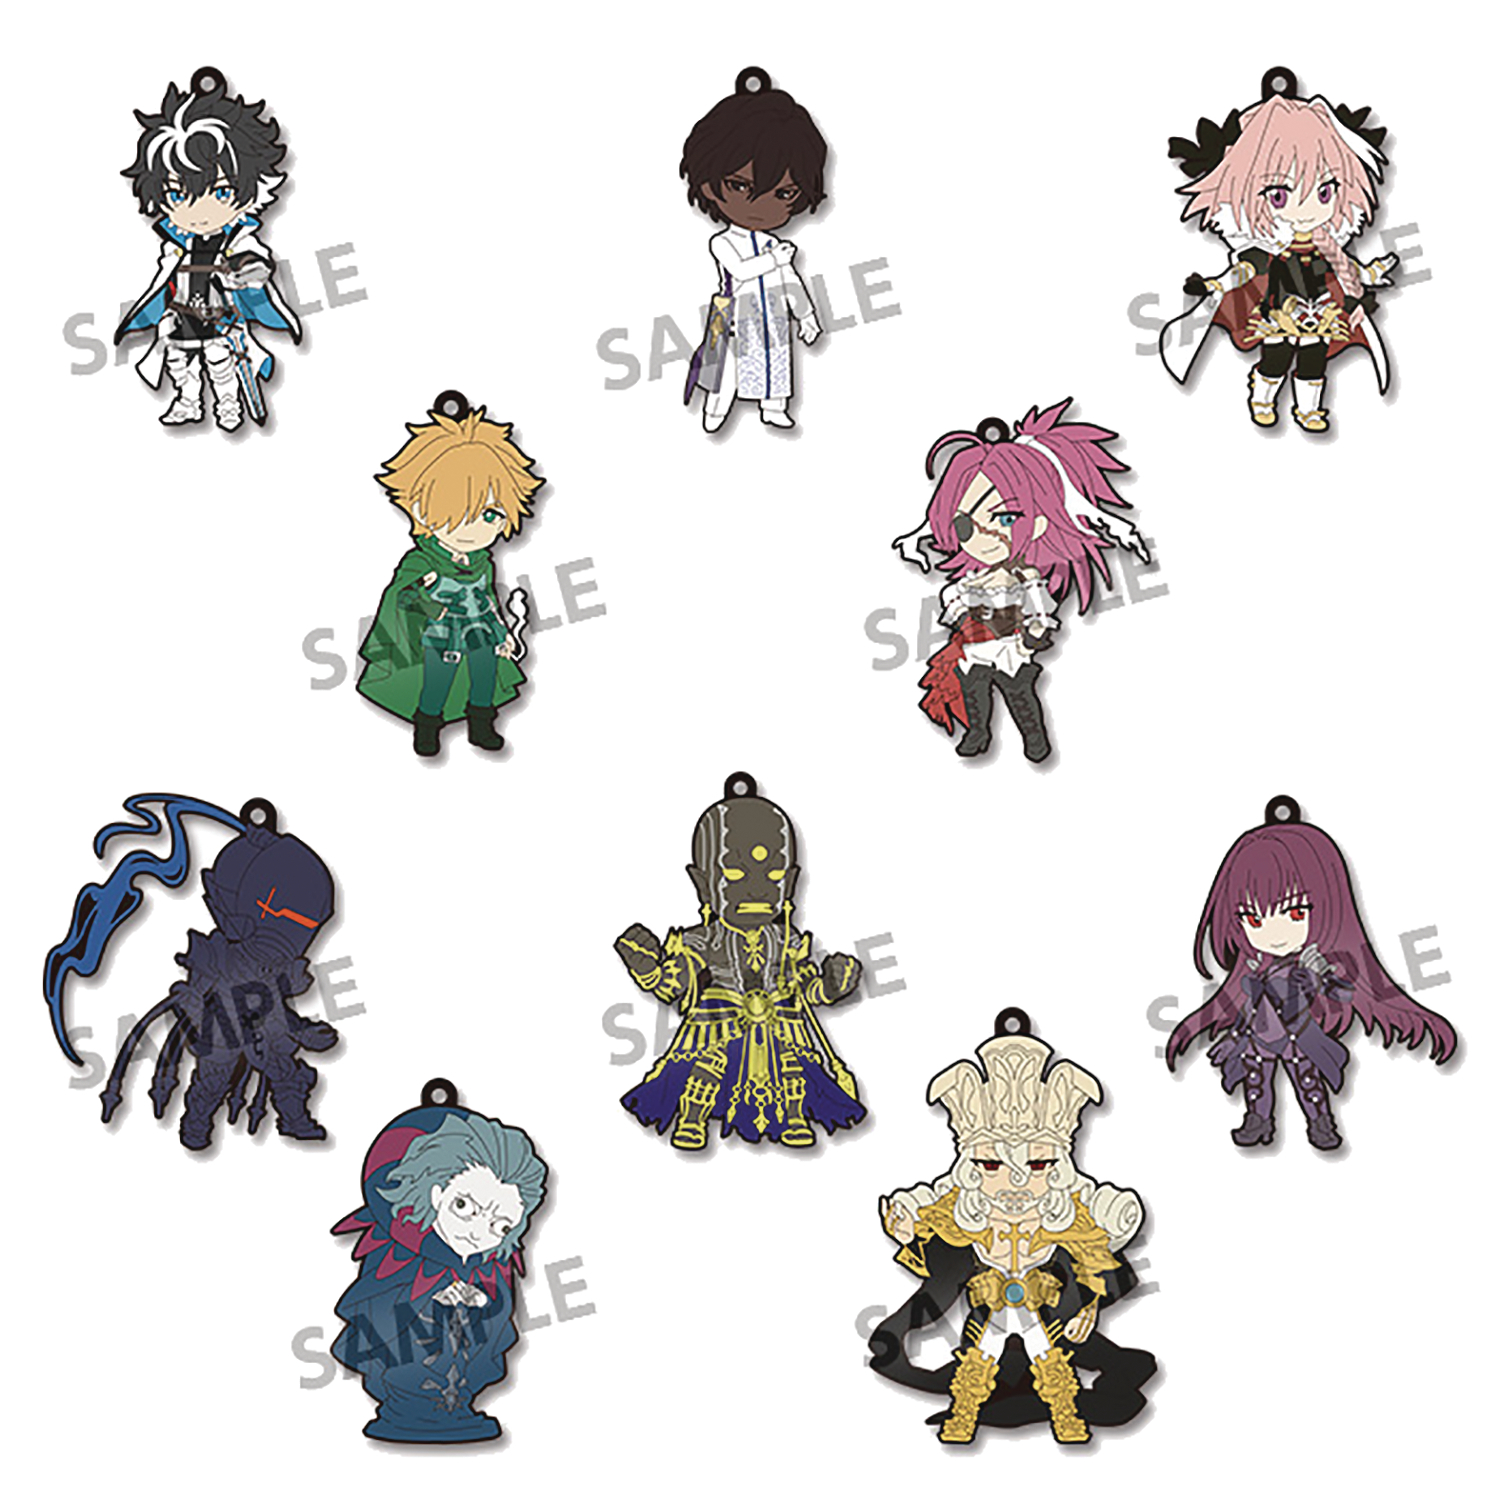 PIKURIRU FATE EXTELLA LINK RUBBER STRAP 10PC BMB DS